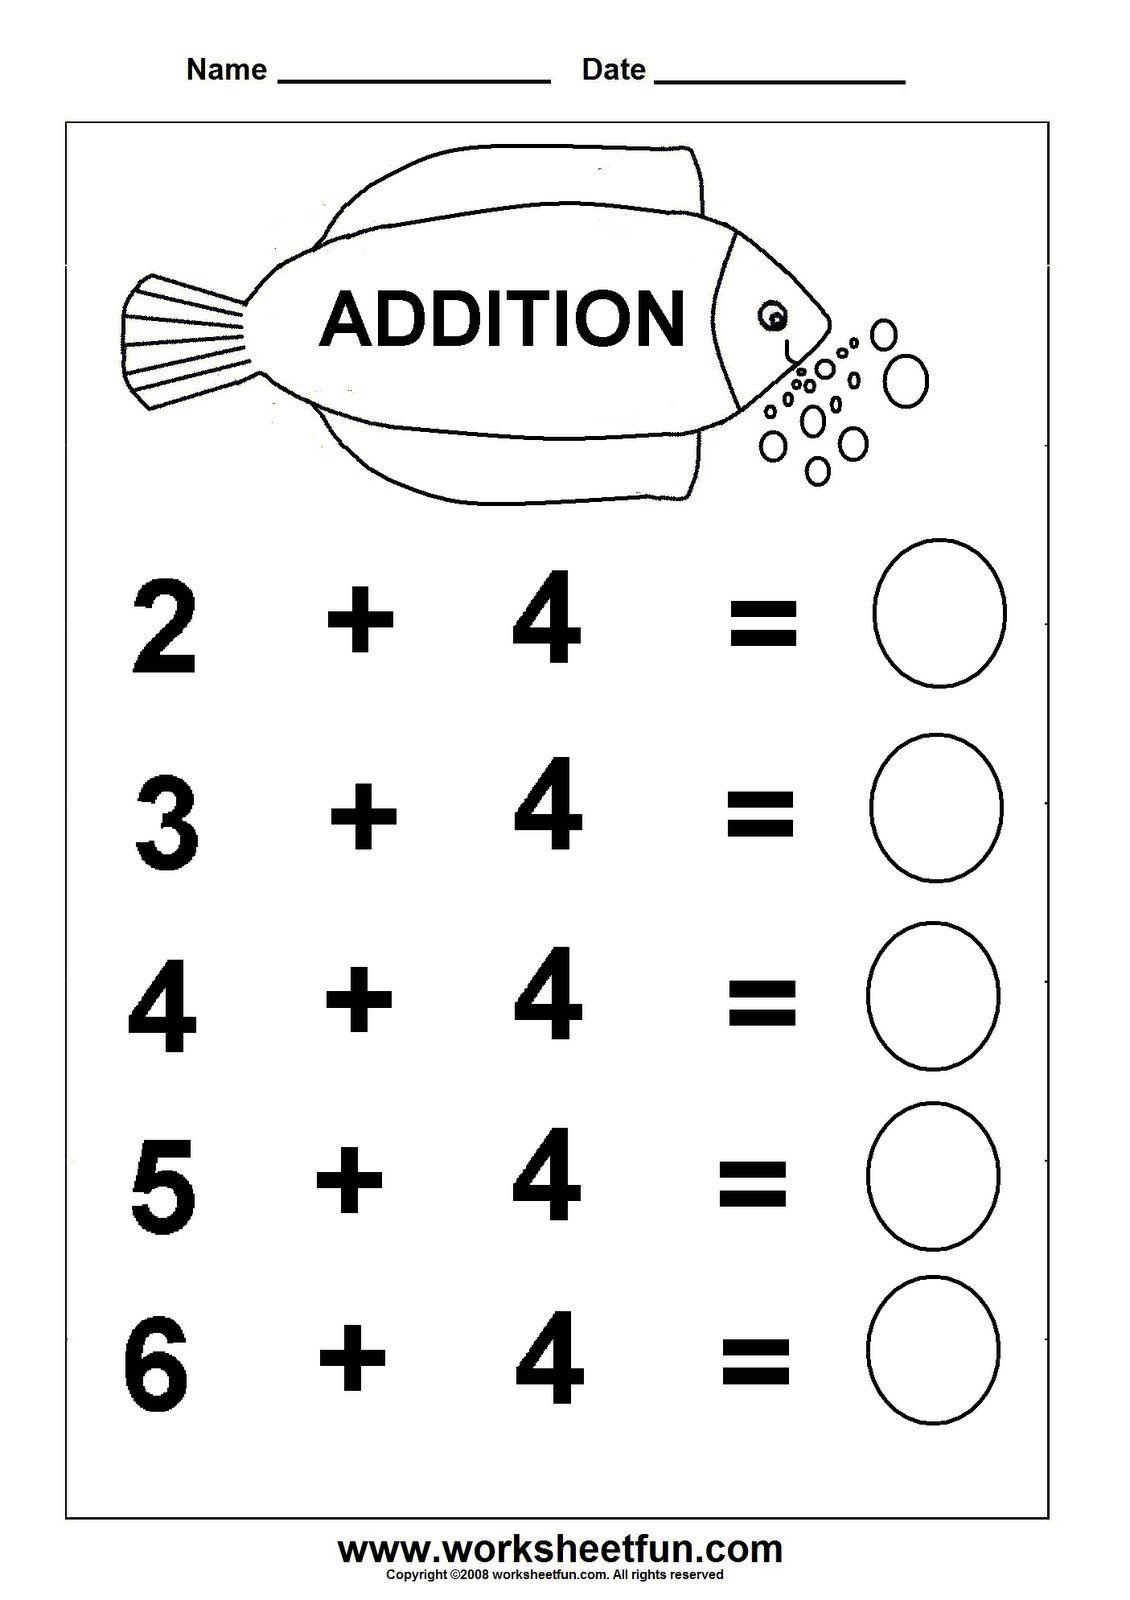 basic english worksheets for kindergarten | Worksheetfun - FREE ...